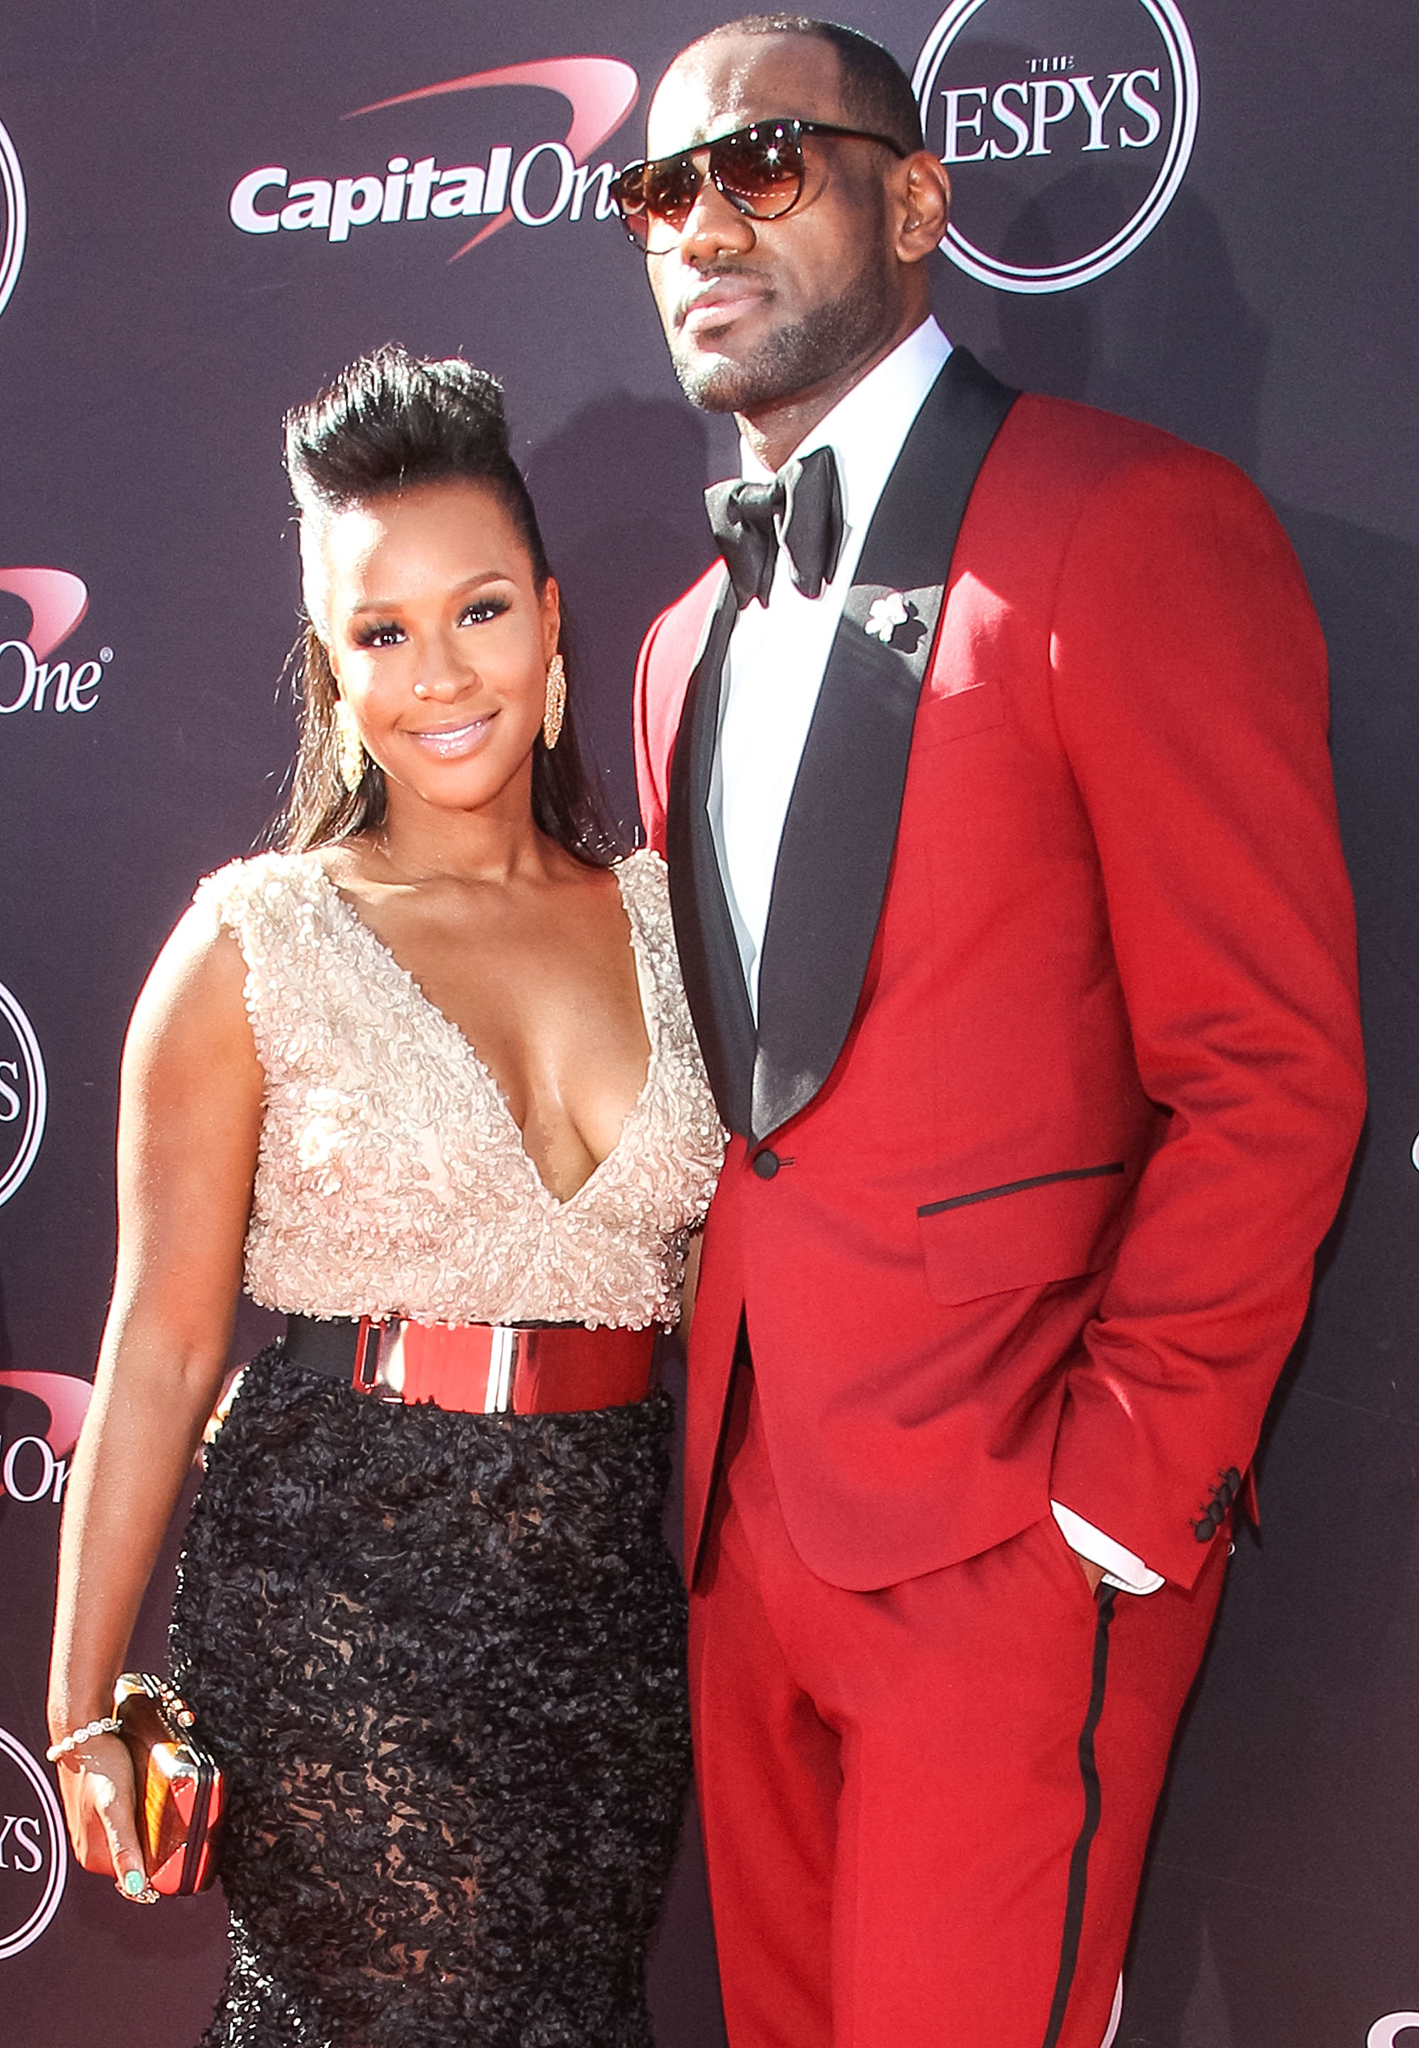 Savannah Brinson and LeBron James (Getty Images)